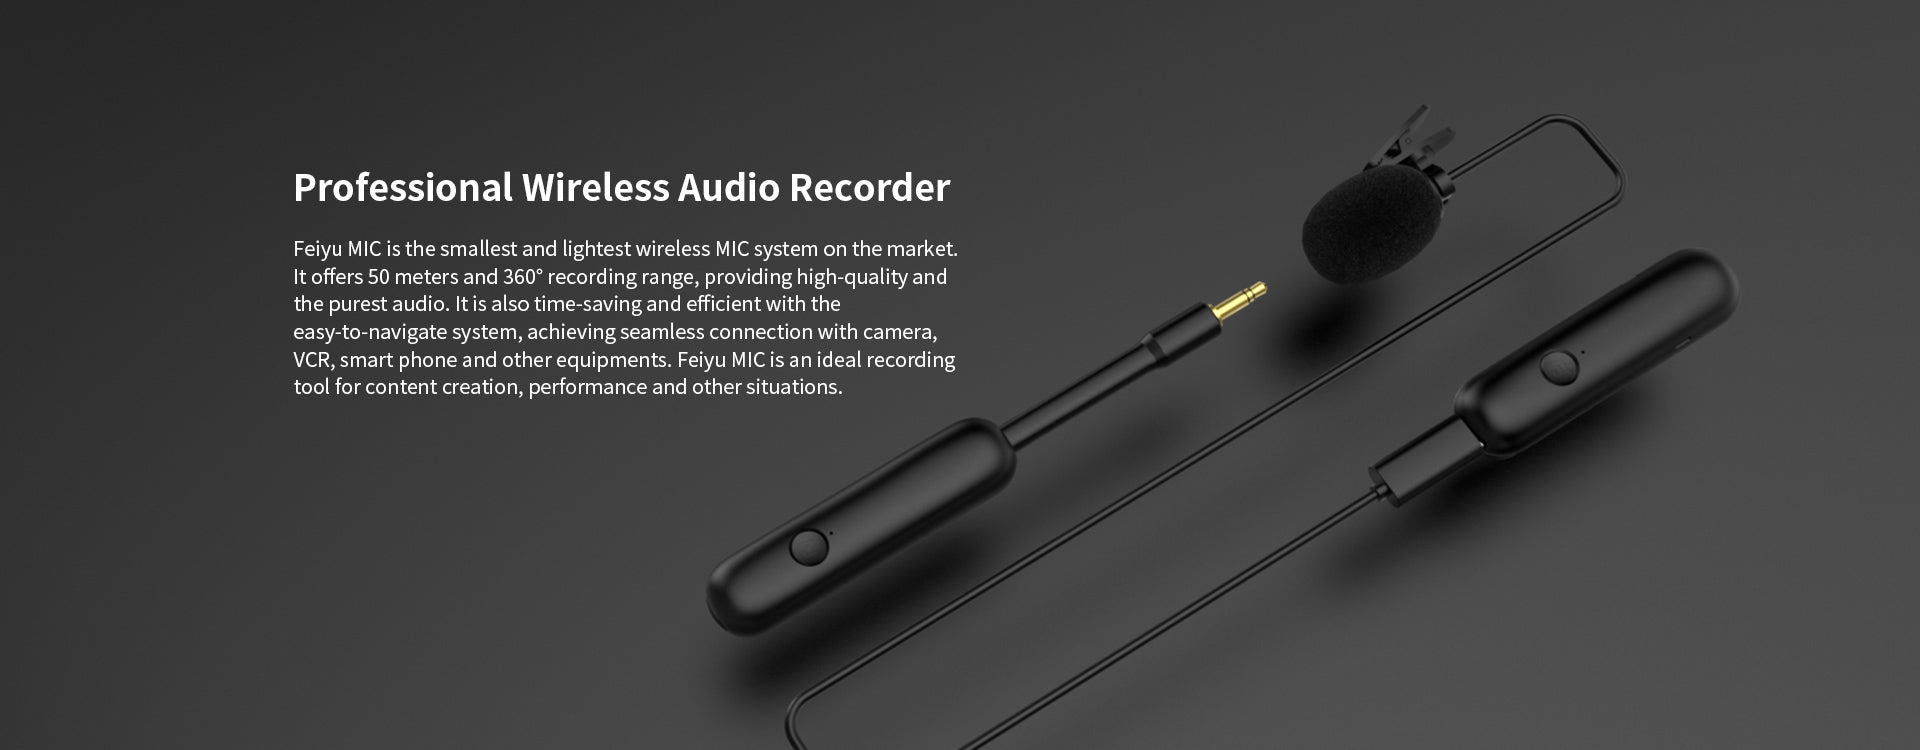 FeiyuTech Wireless Audio Recorder Overview